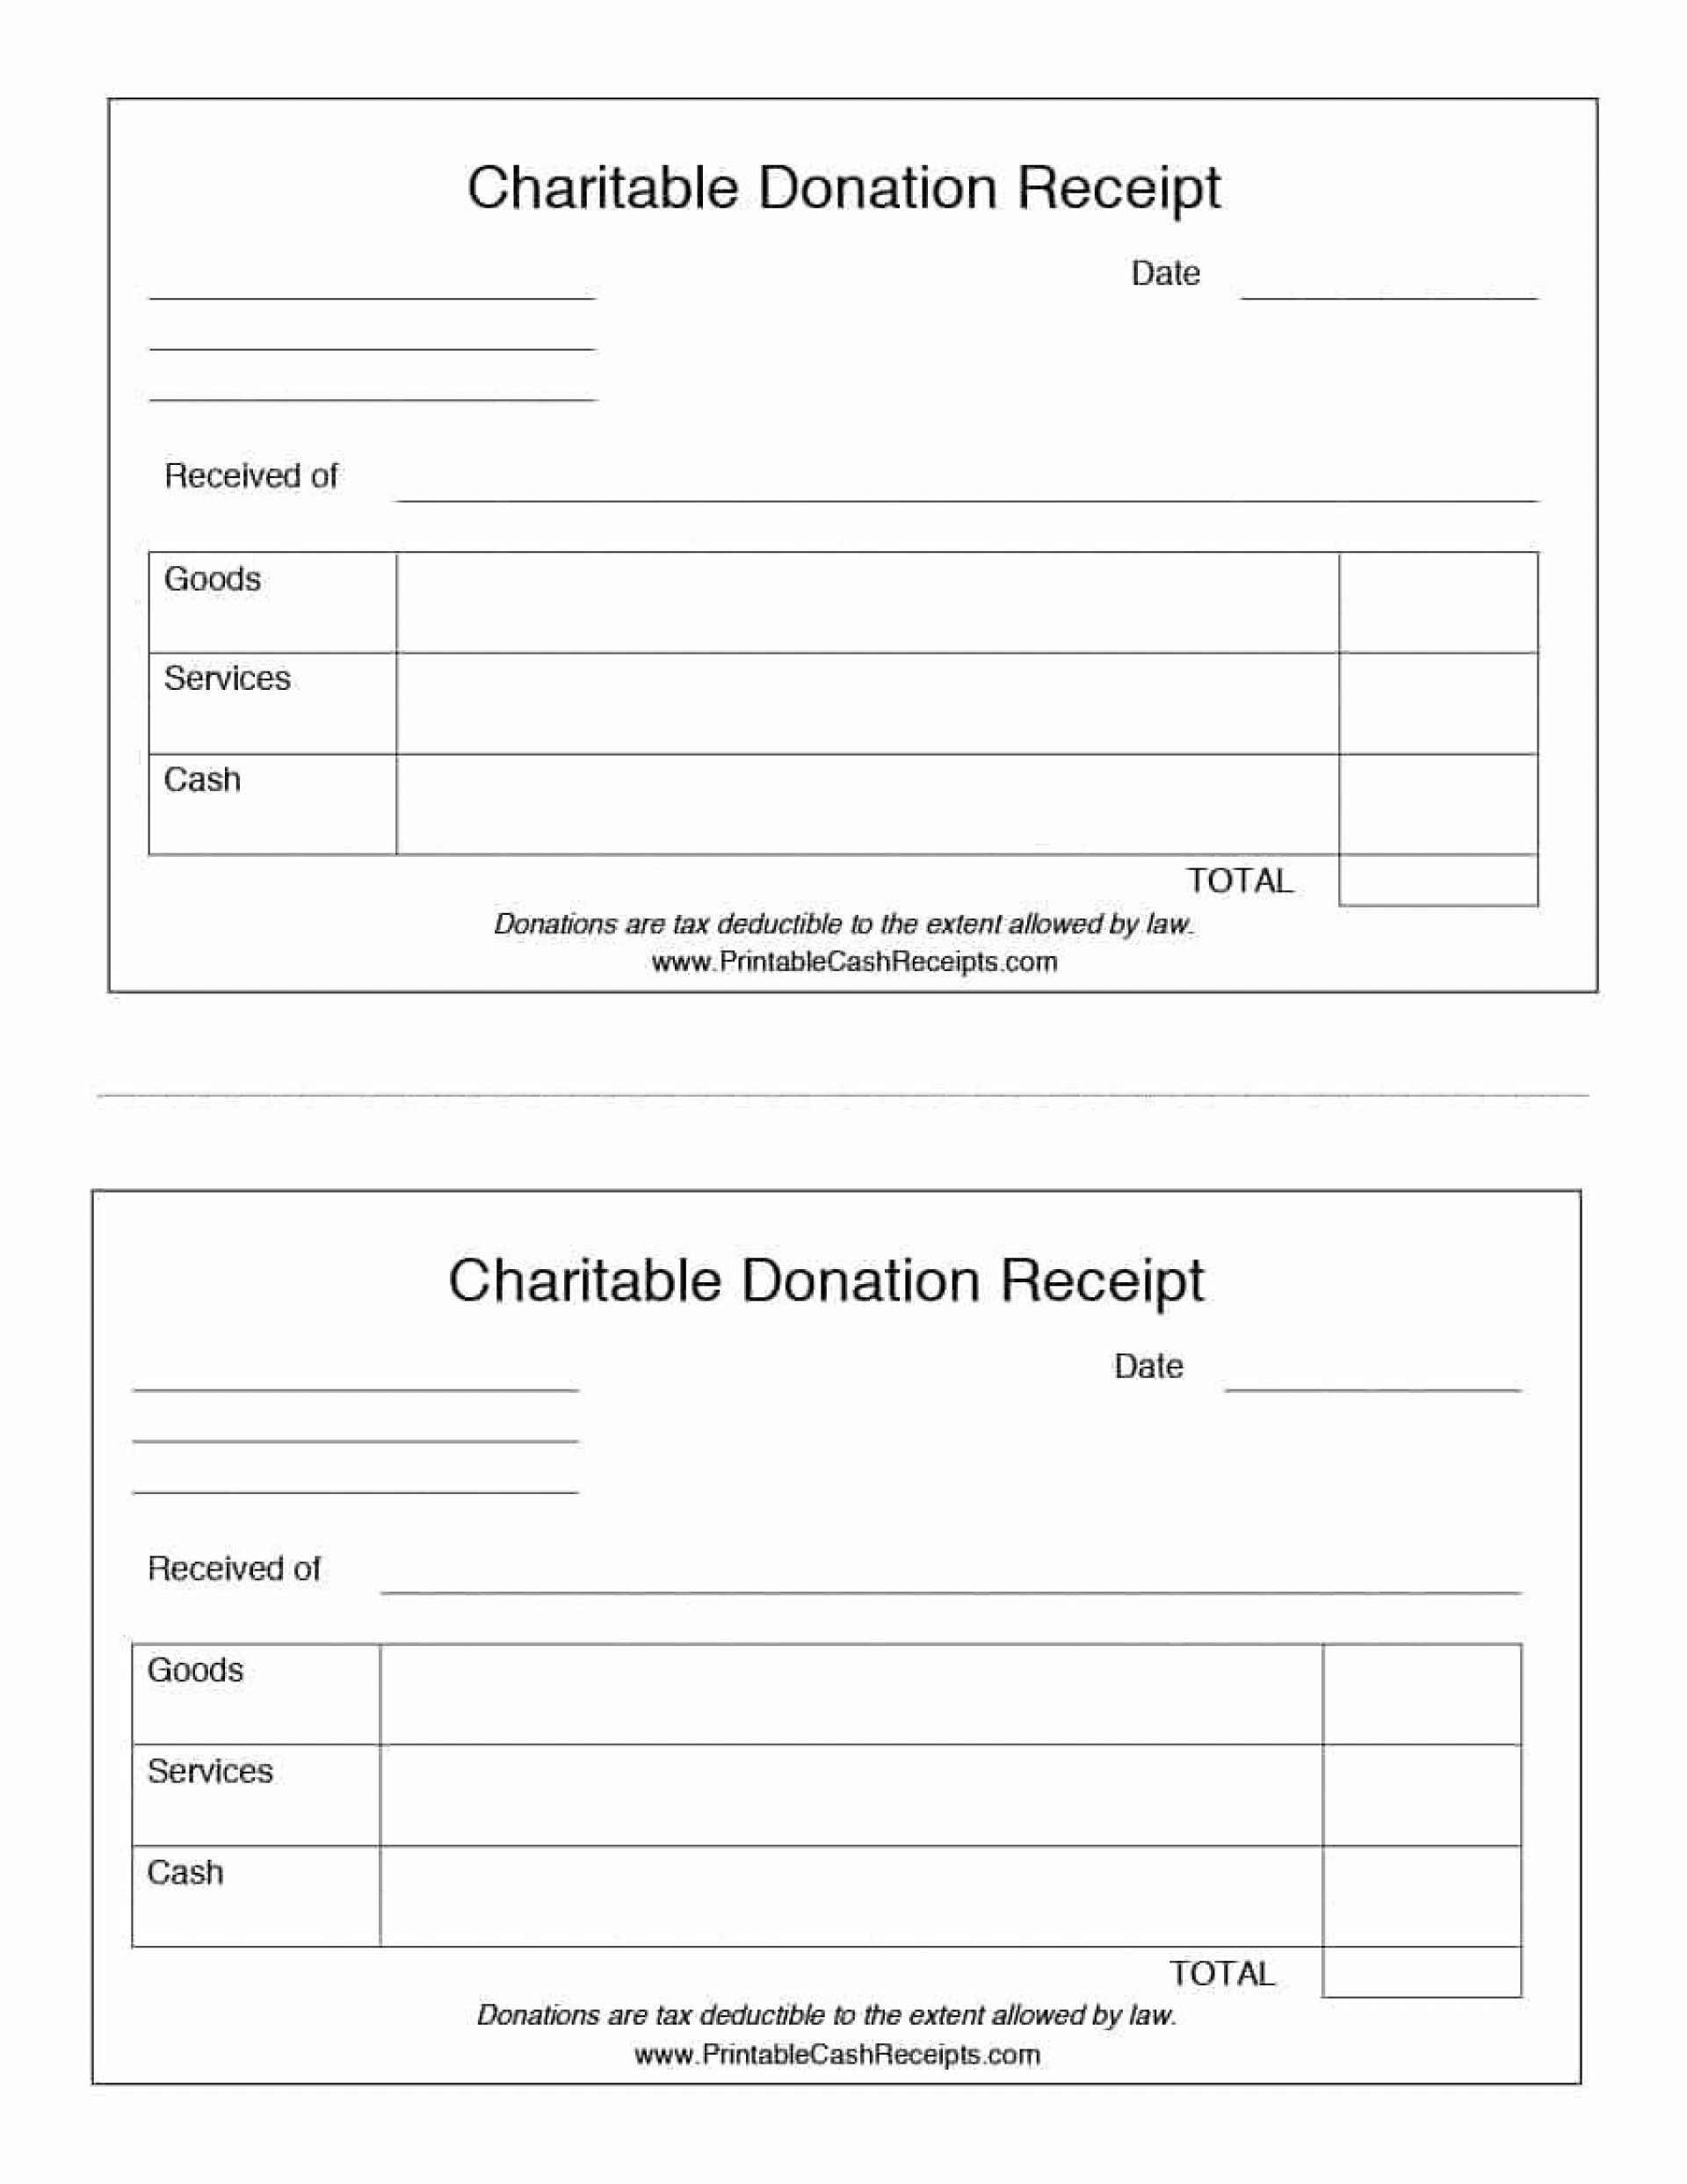 000 Simple Tax Deductible Donation Receipt Printable Example 1920